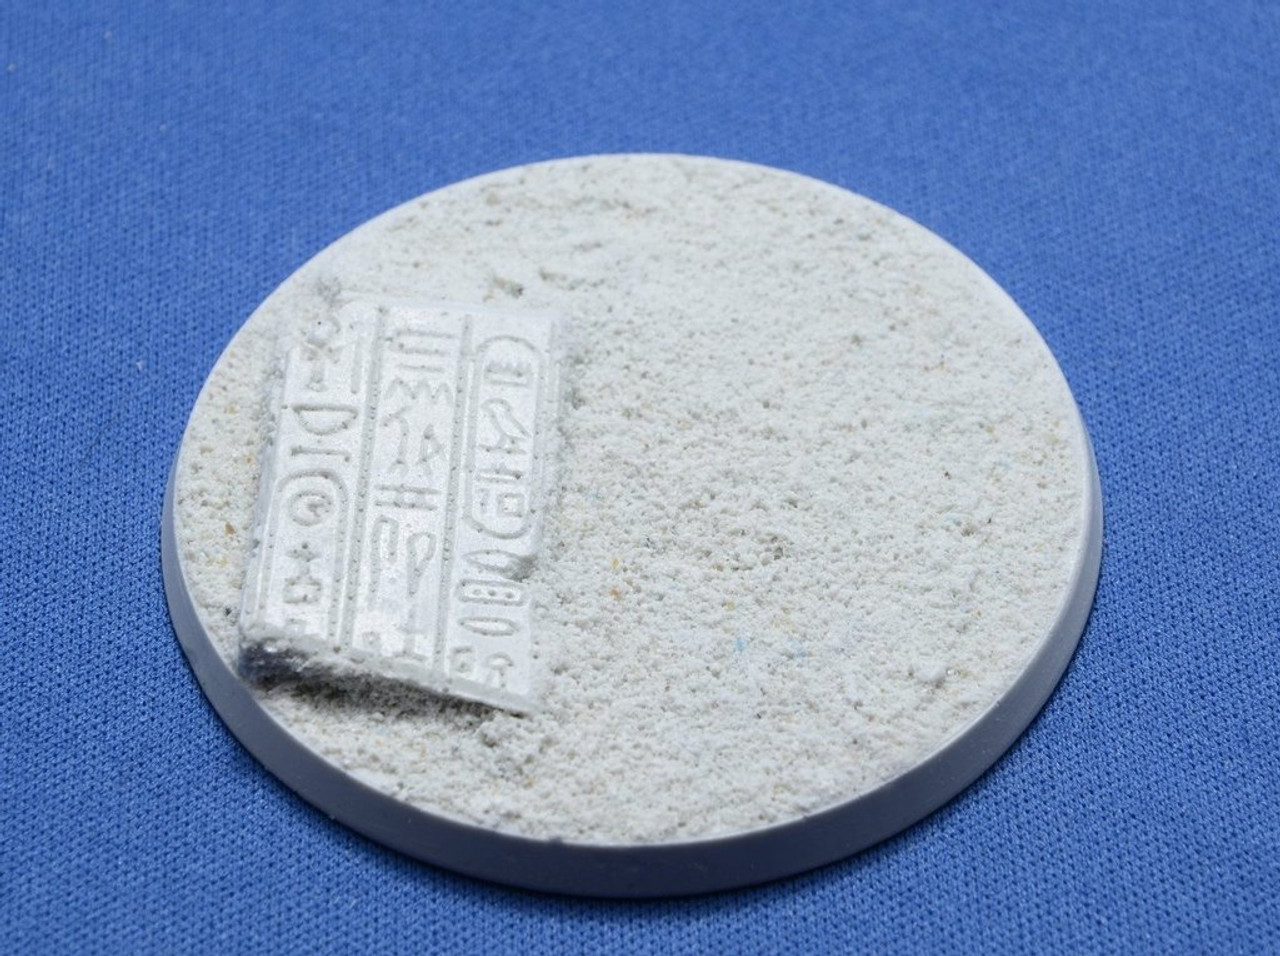 Elriks Egyptian Ruins Round Bases - 60mm B - Round - 1 pack